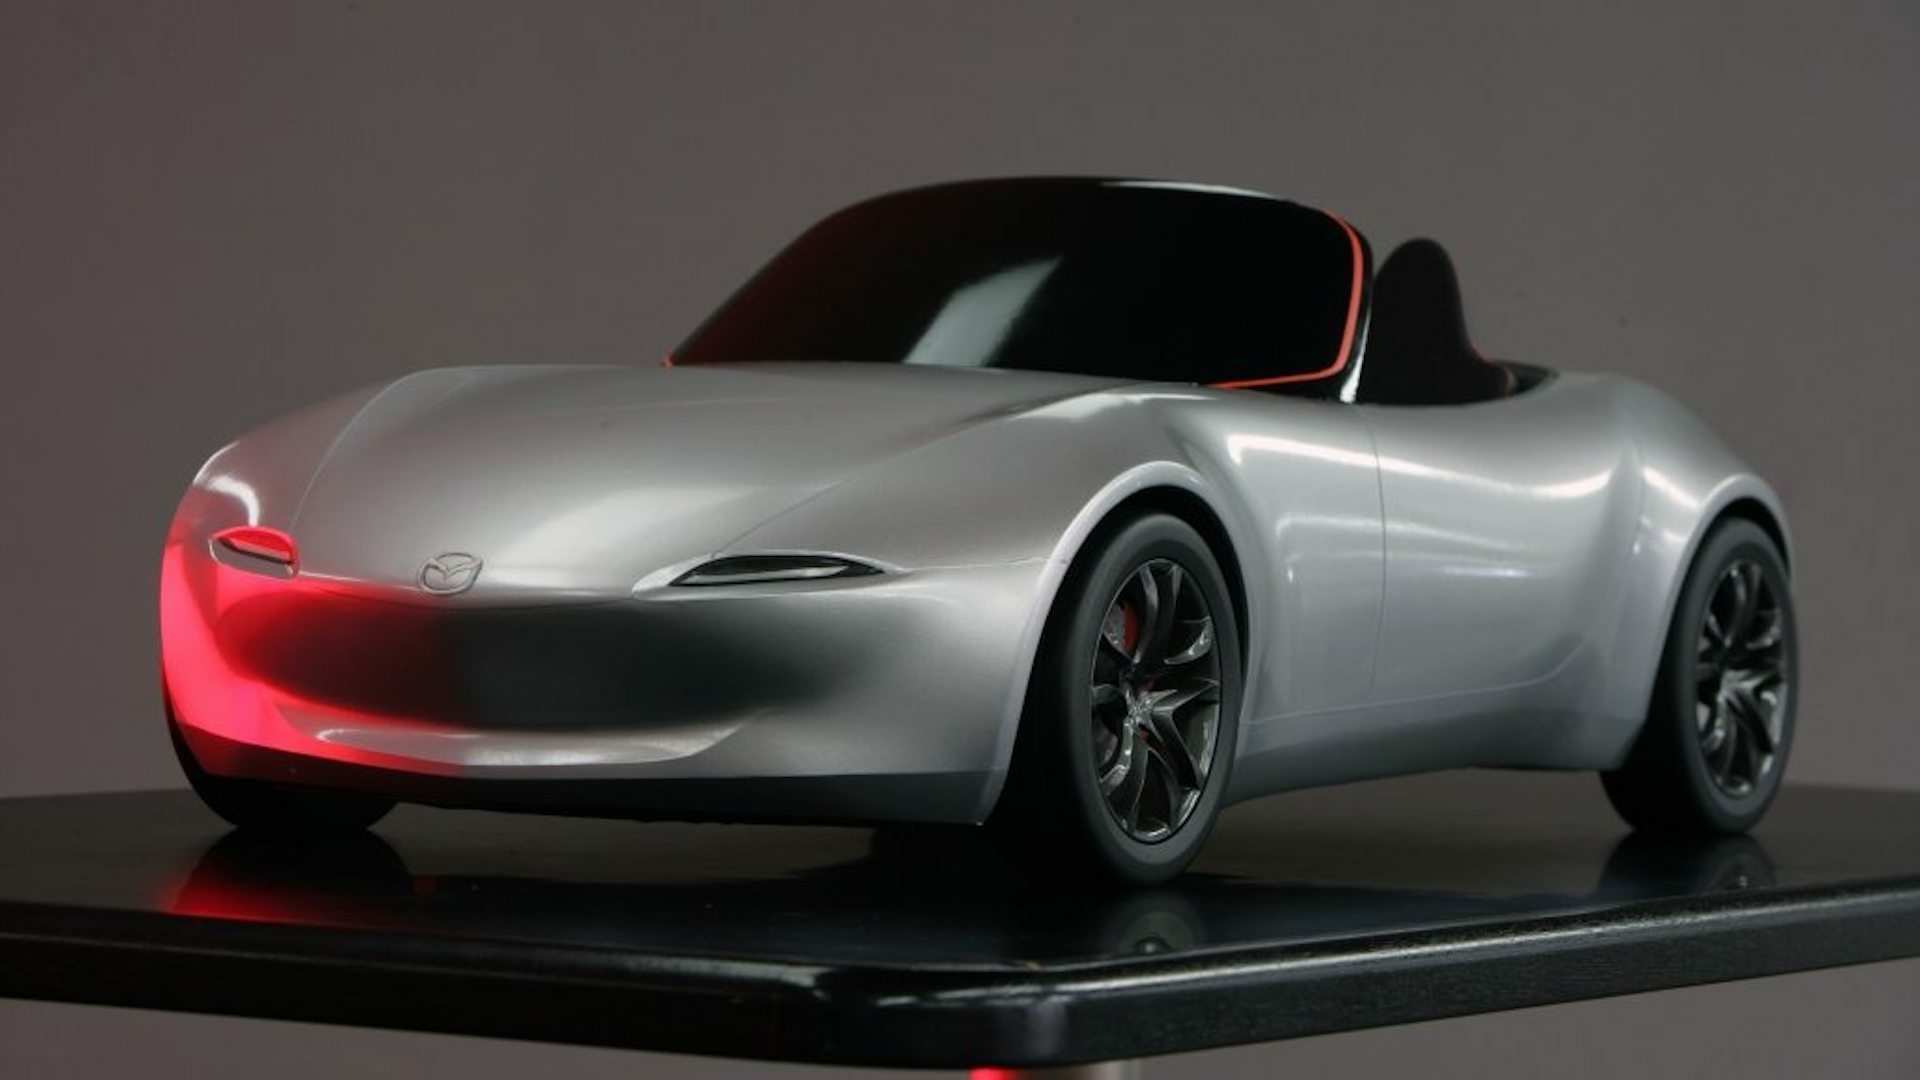 49 The Best 2020 Mazda Miata Review